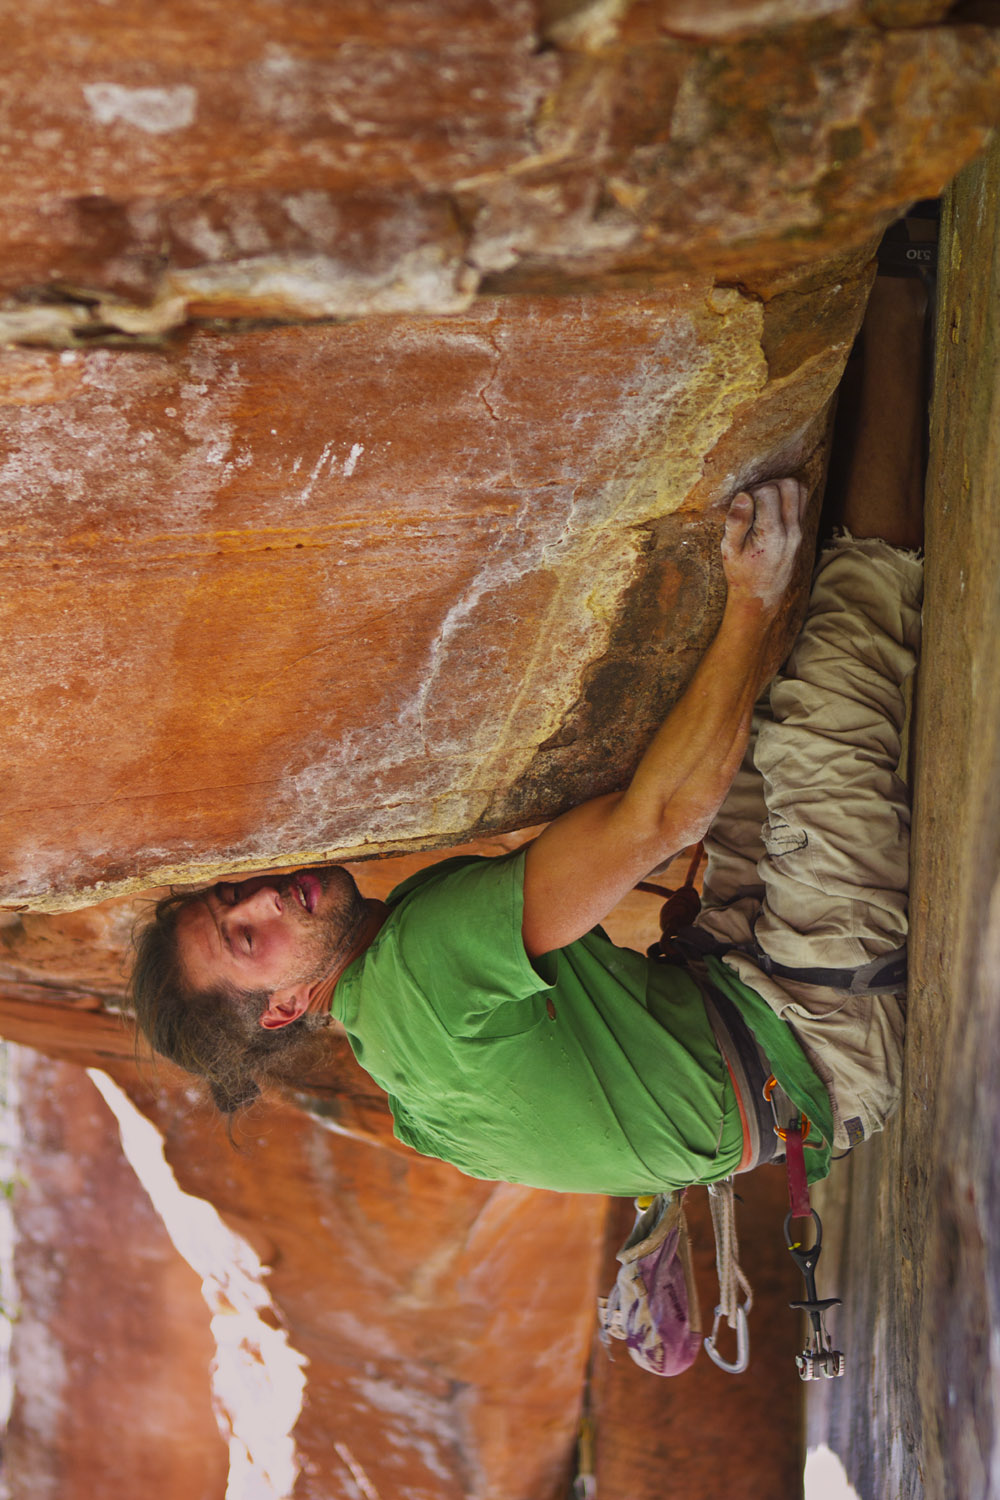 Climber Battles it out on 'Over the Rainbow'